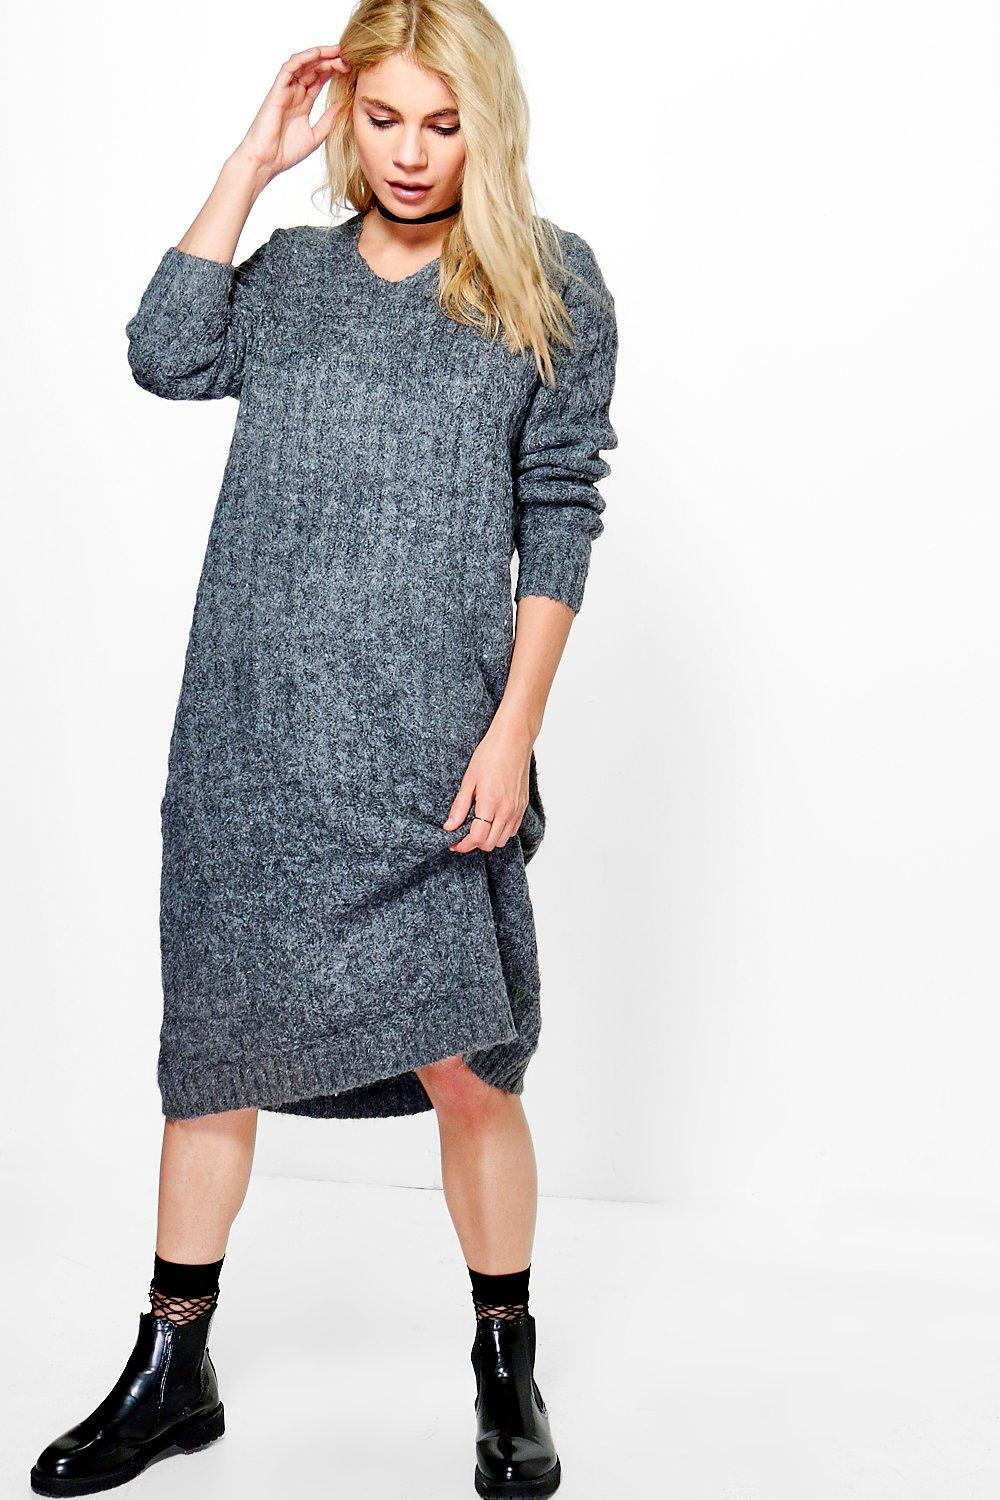 Hooded Knitted Dress  charcoal